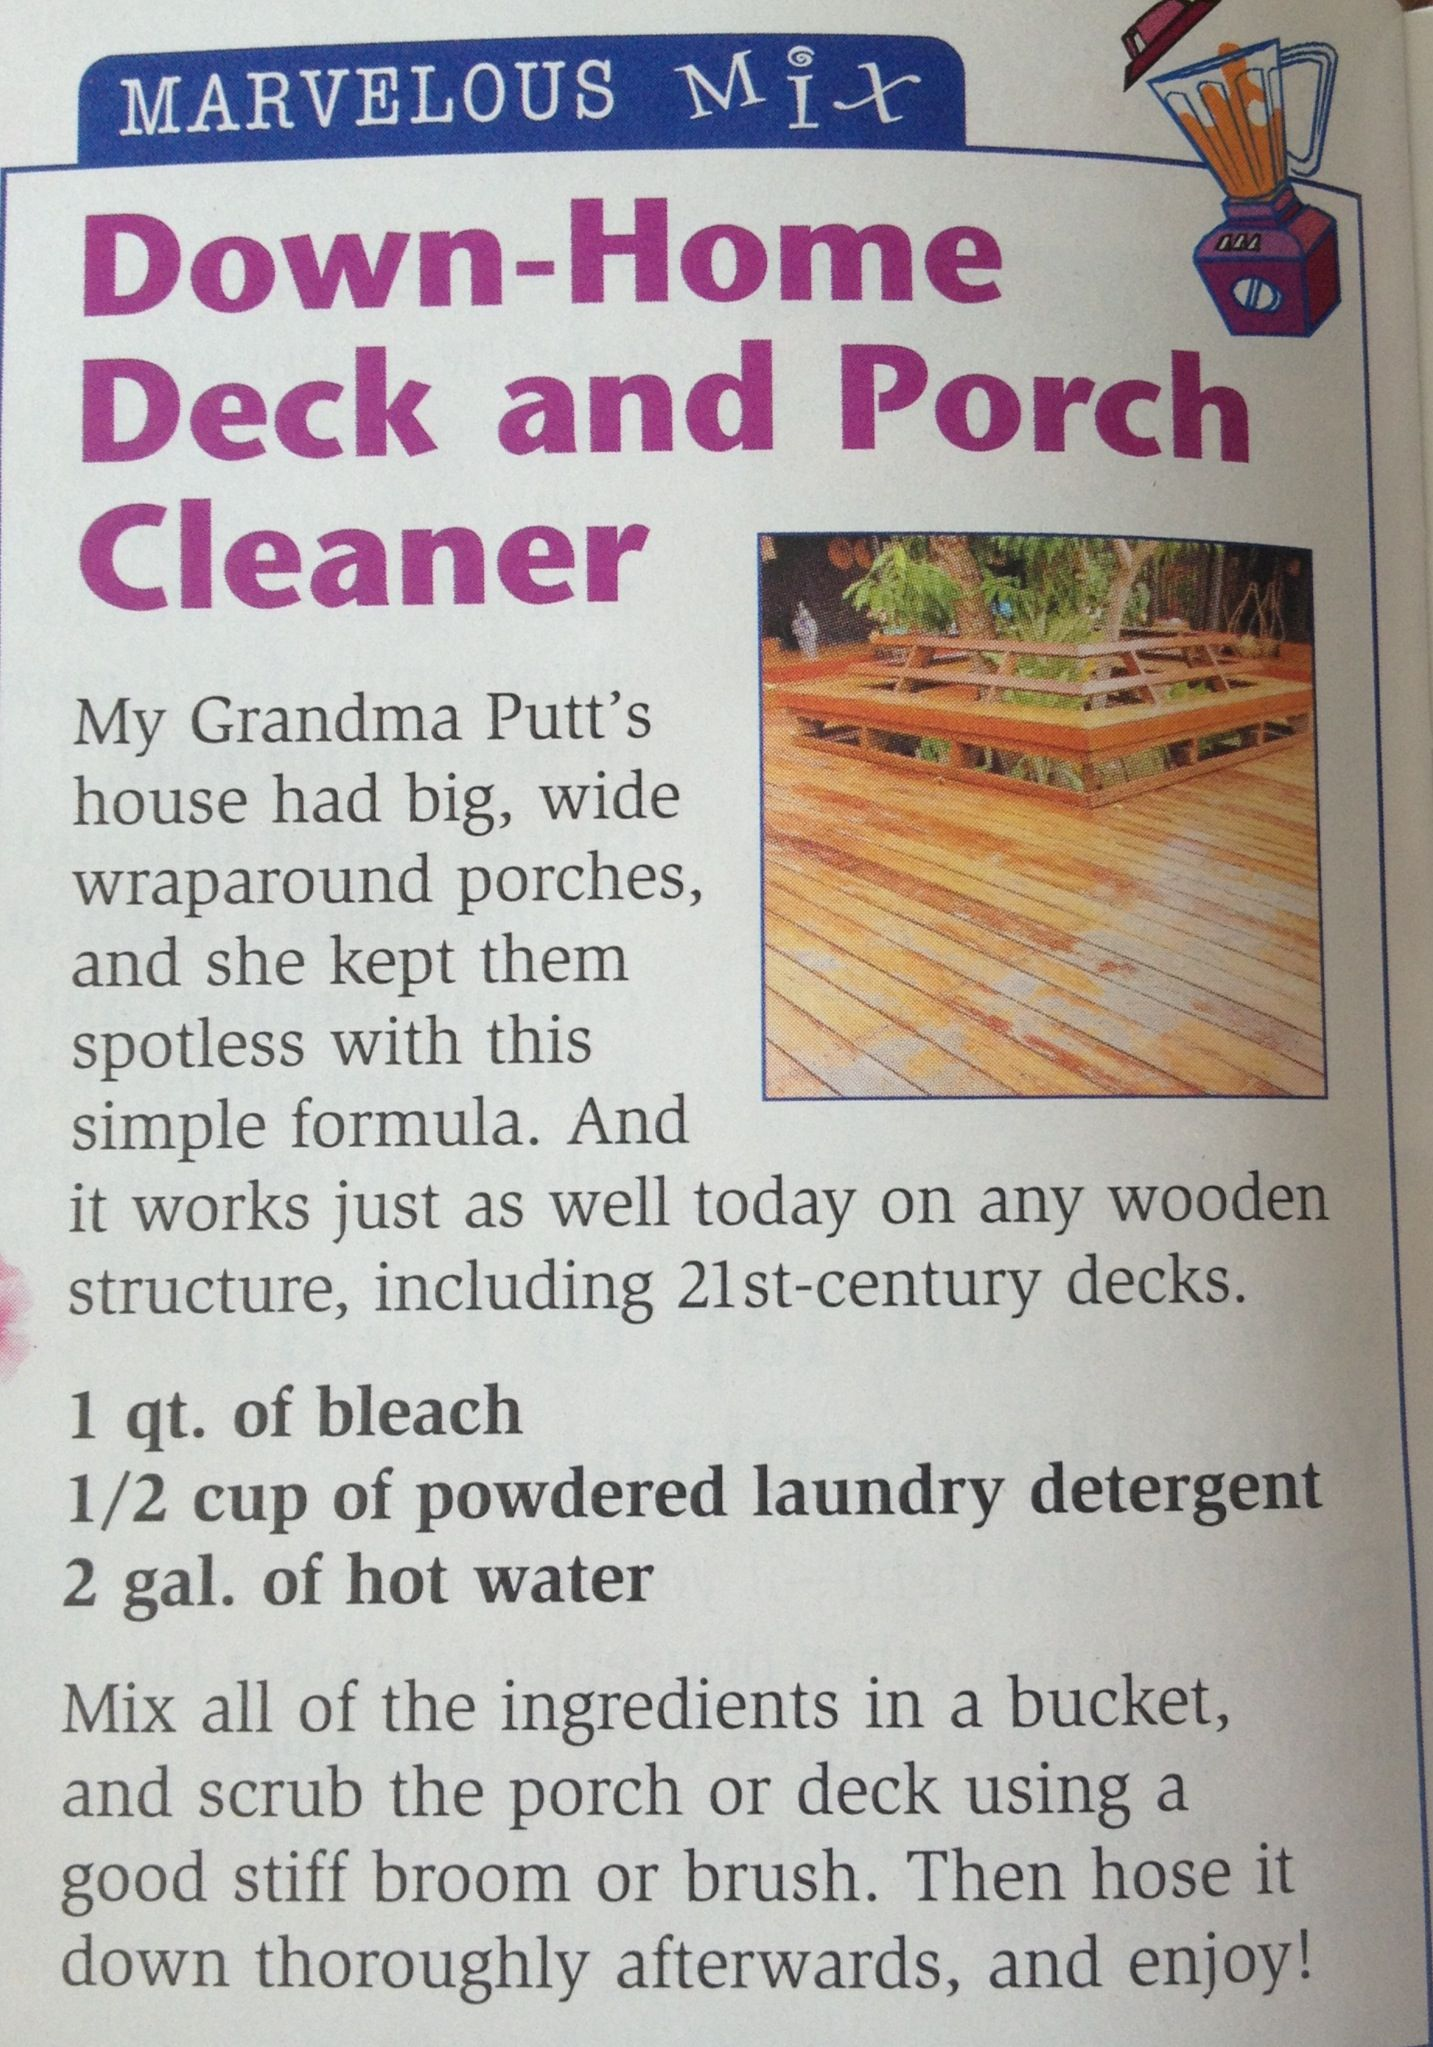 Diy Deck Cleaner Deck And Porch Cleaner Making Life Easier Pinterest